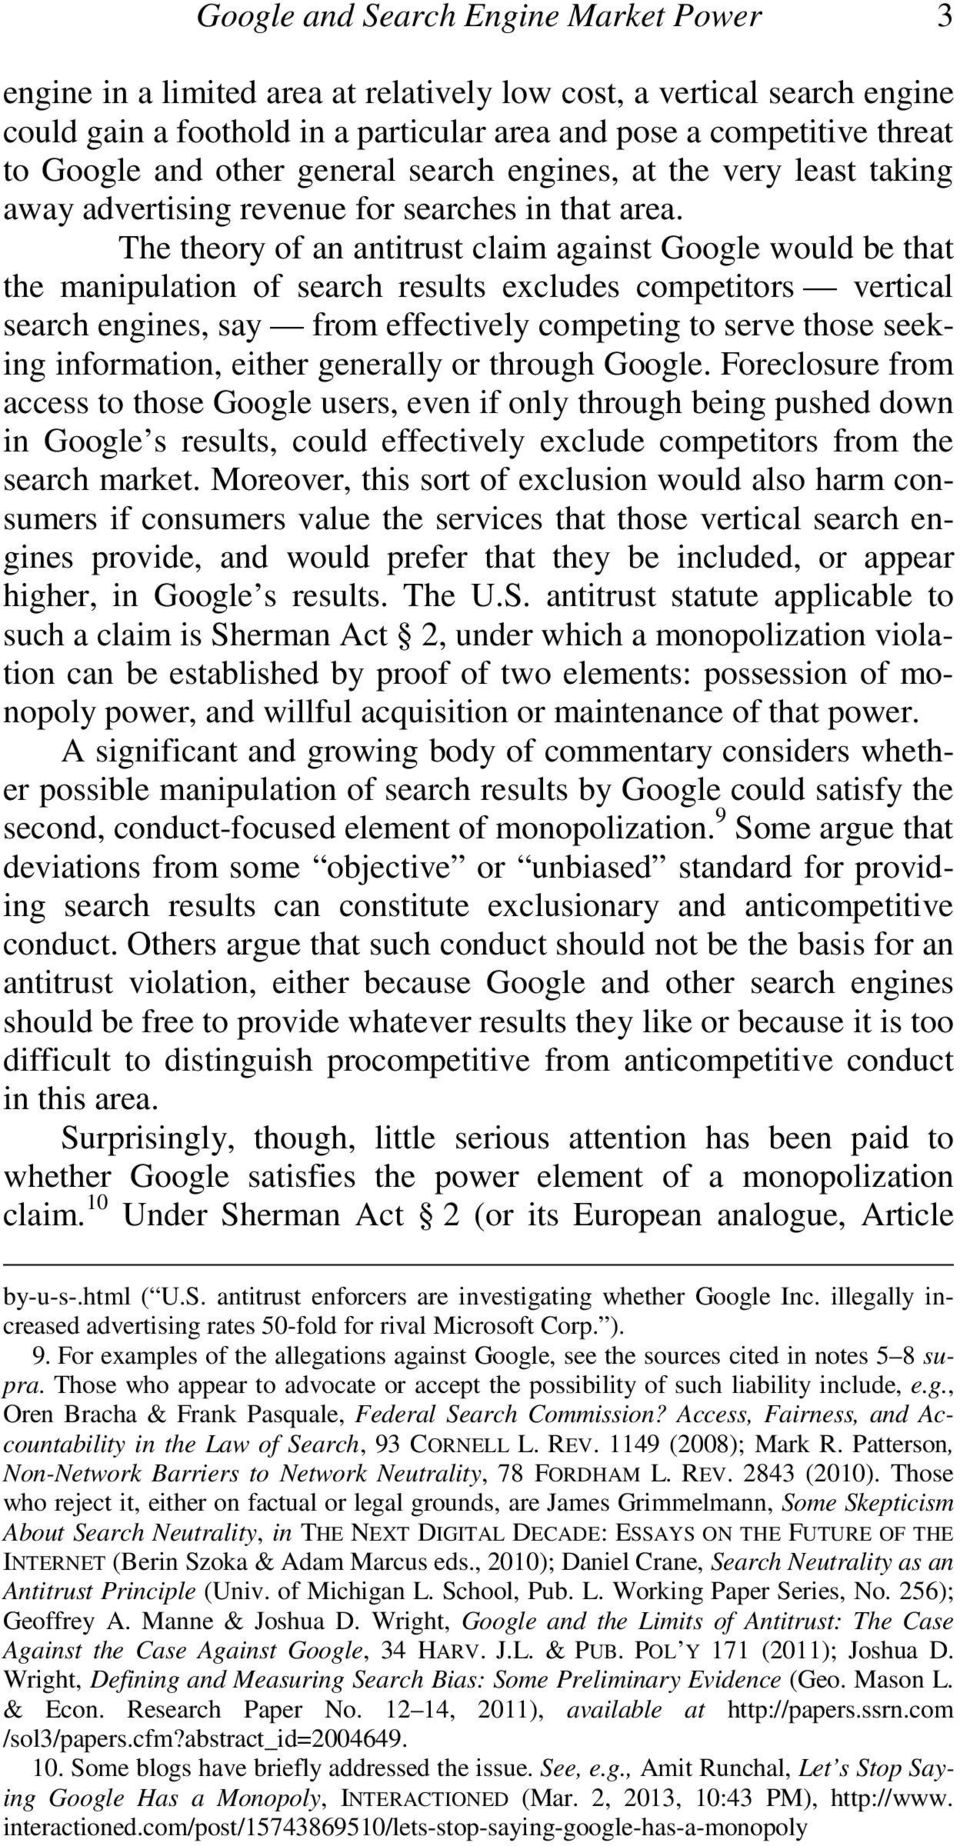 The theory of an antitrust claim against Google would be that the manipulation of search results excludes competitors vertical search engines, say from effectively competing to serve those seeking